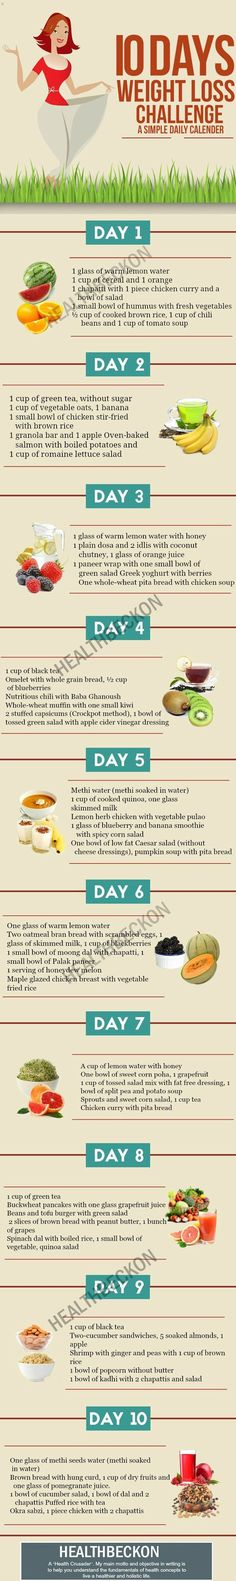 This 4 Step Weight Loss Challenge makes so much sense! 1st Step--Drink more water! Check always the rest out, therefore easy :-) #weightloss #challenge a